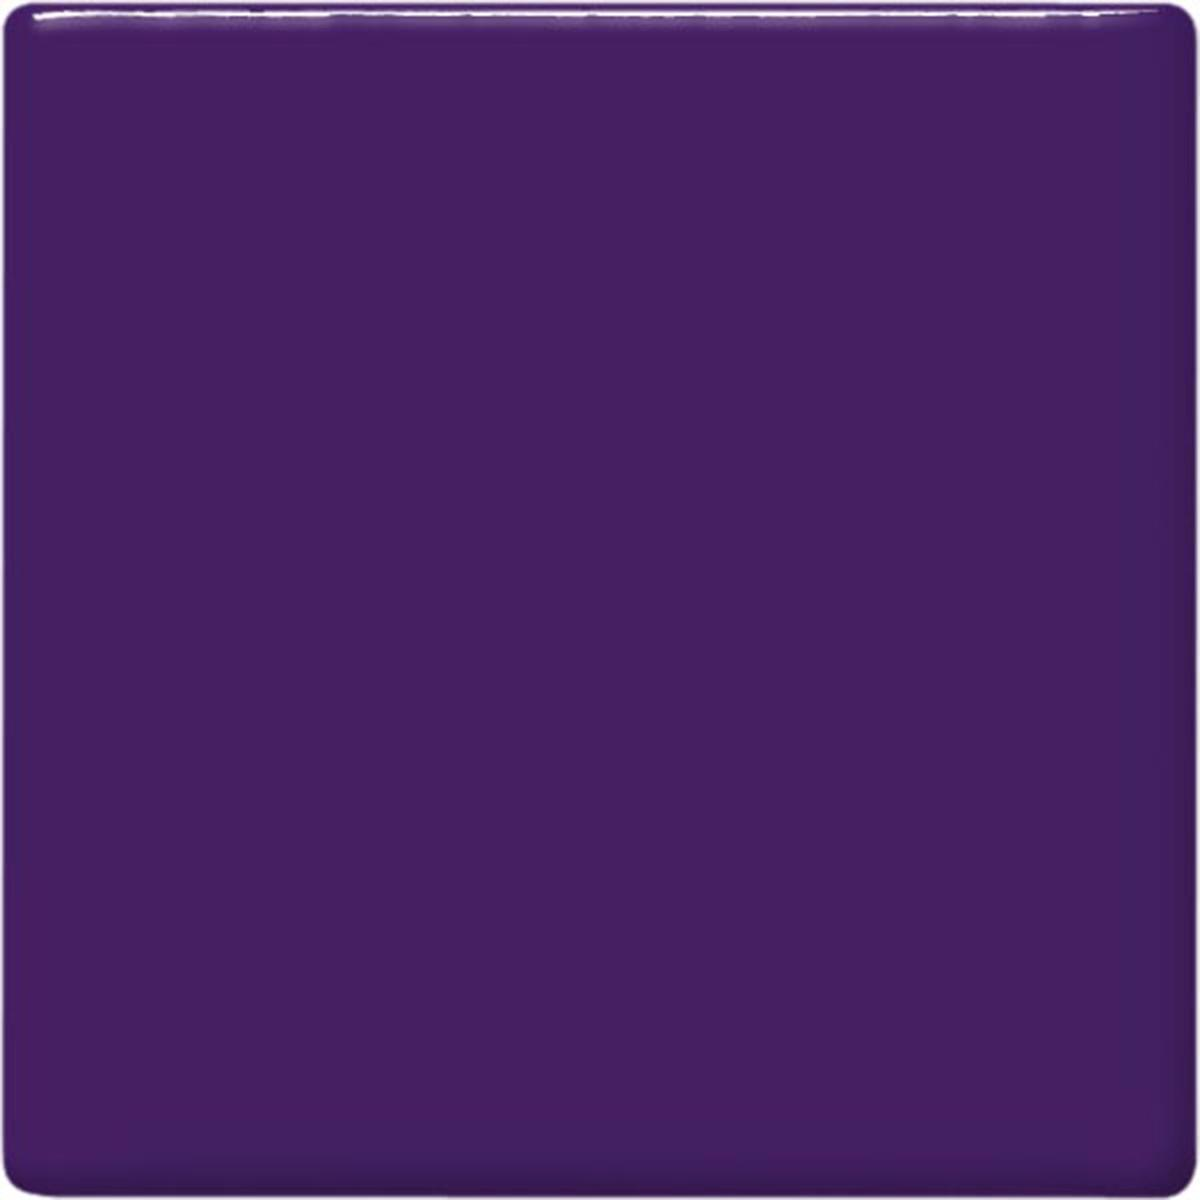 AMACO Teachers Palette Glaze Grape TP-51 1 Pint